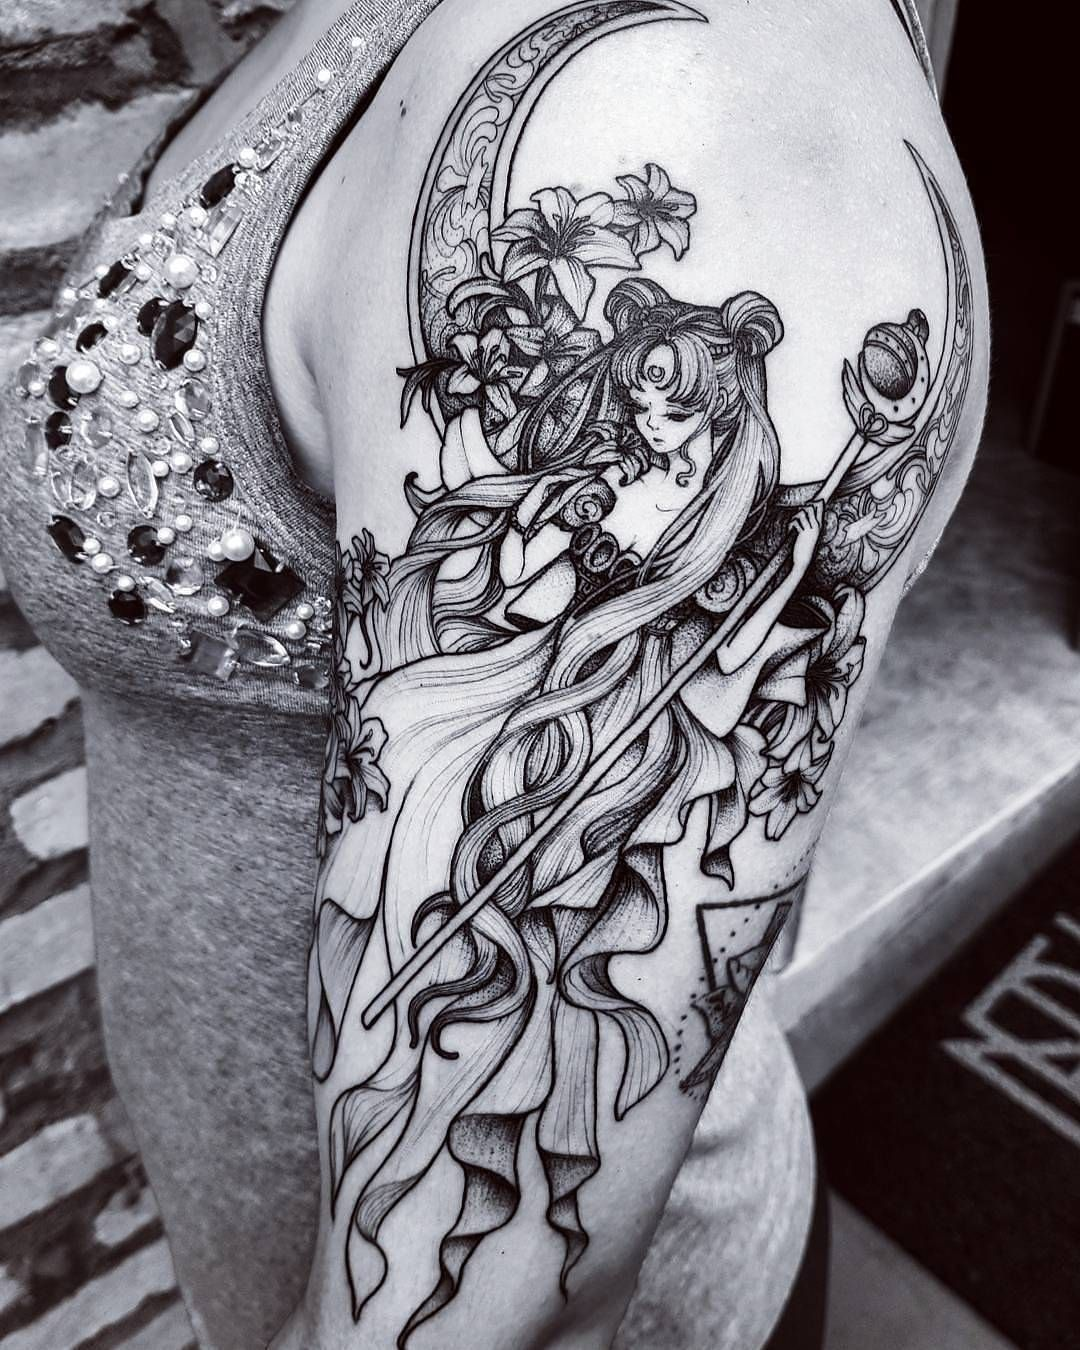 Princess Serenity tattoo. Sailor Moon. | Anime and Amazing Tattoos ...